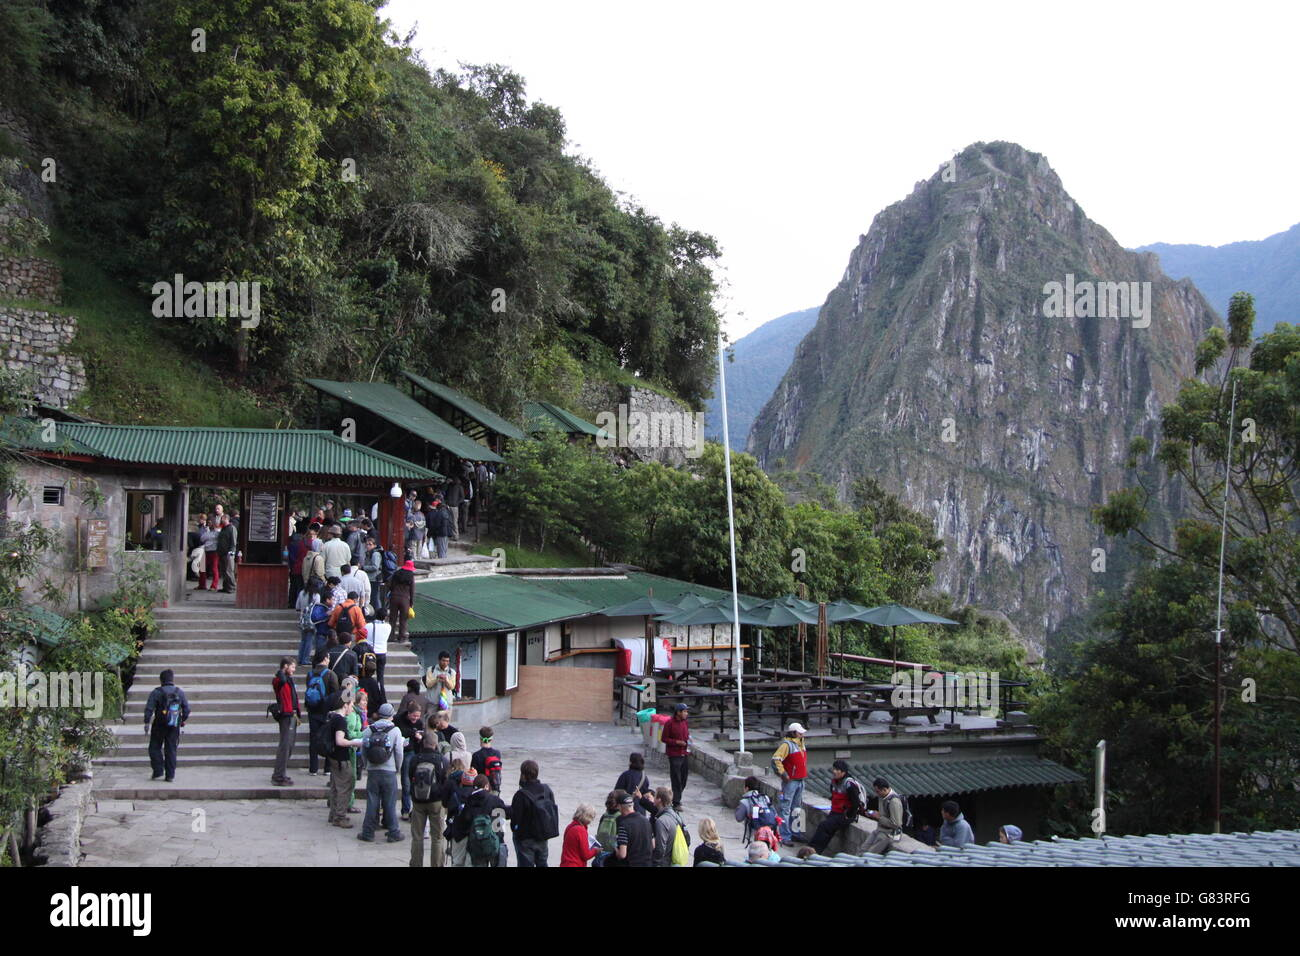 Entrance to the Machu Picchu historical site just after dawn, with people waiting to enter, with Huayna Picchu or - Stock Image